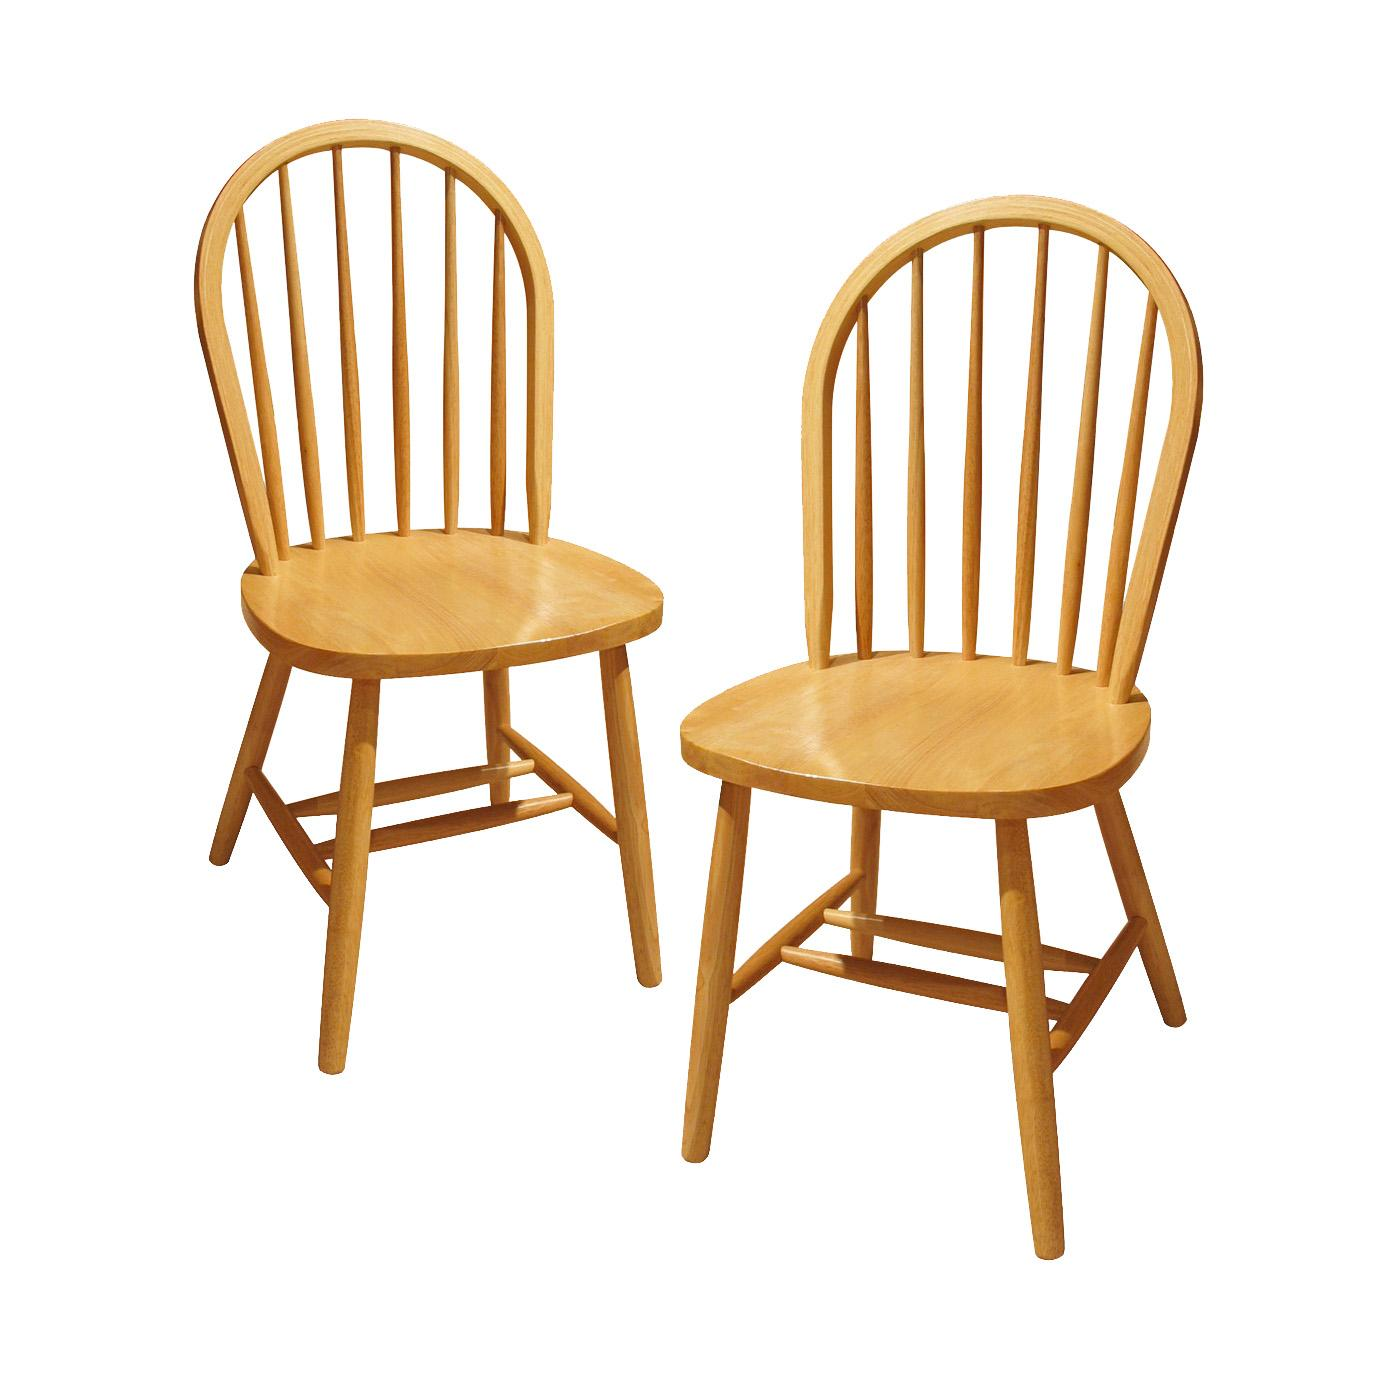 Winsome Wood Windsor Chair, Natural, Set of 10: Amazon.ca: Home